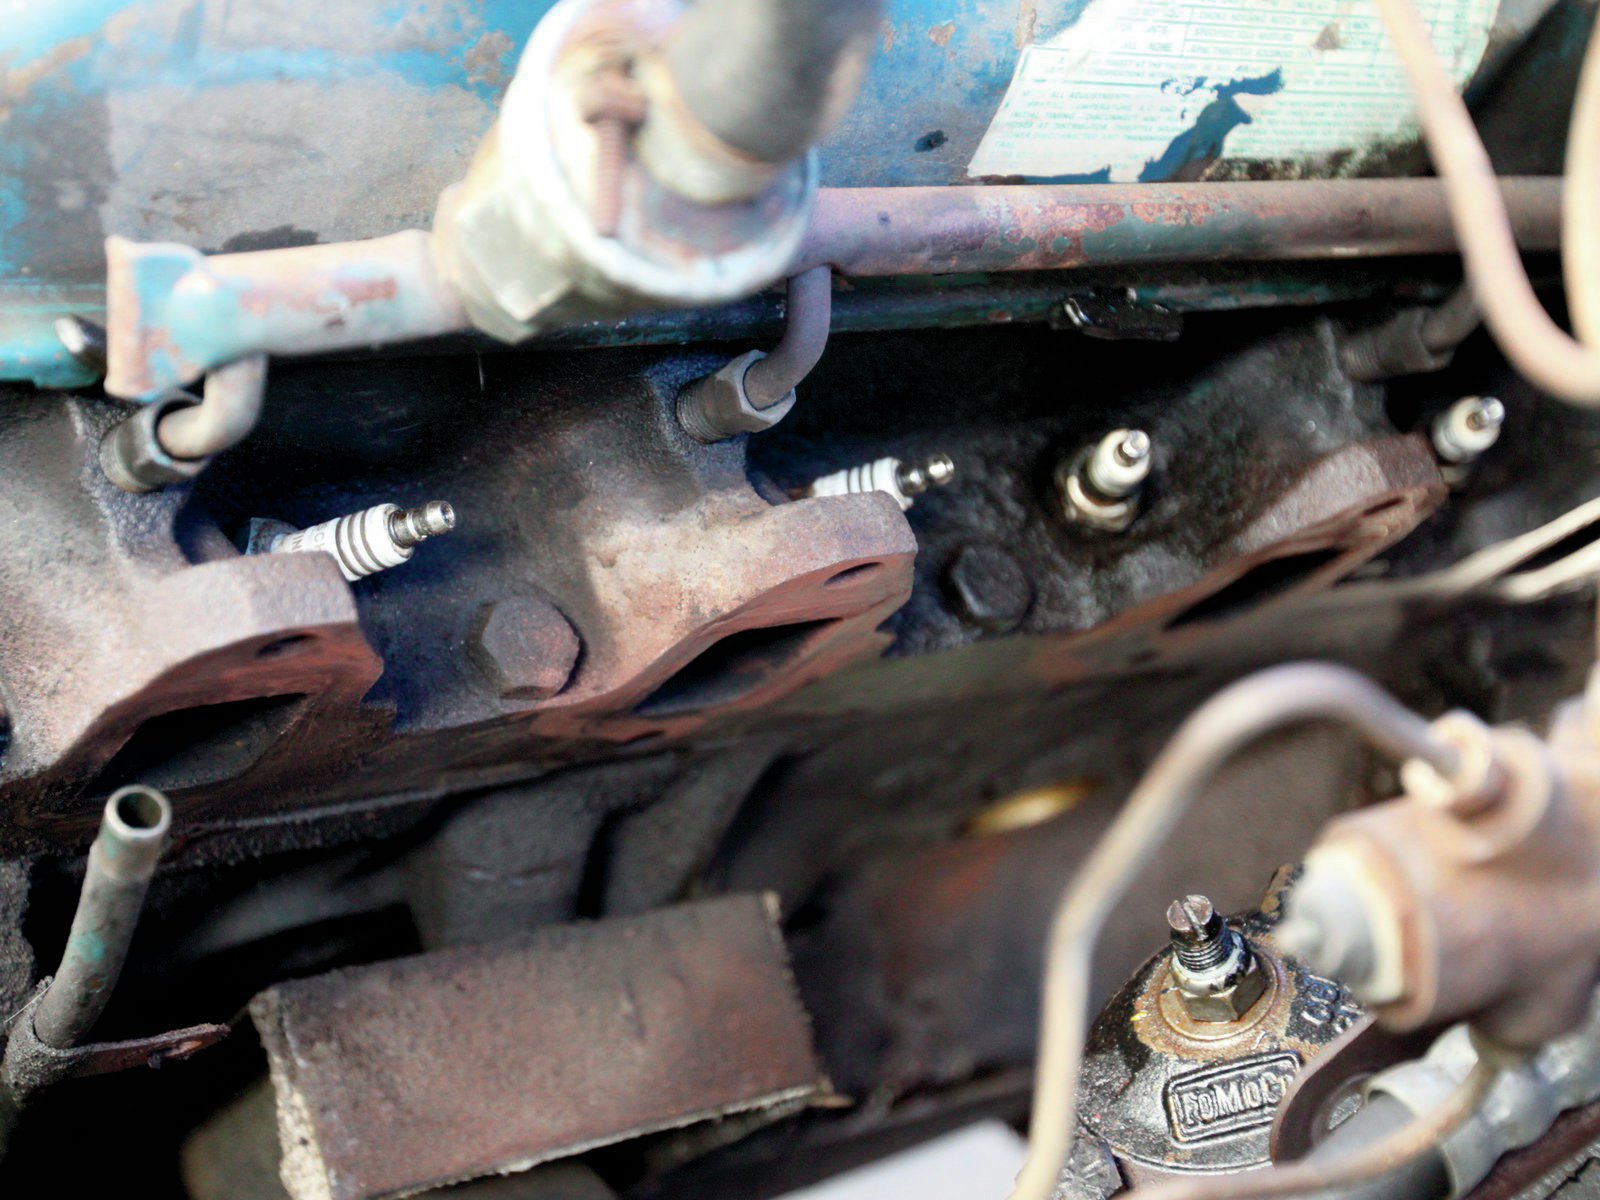 14. To avoid exhaust leaks a good clean surface is needed: I sanded and scraped the exhaust port face clean before mounting the header. Note the factory motor mount heat shield will have to be bent down to allow clearance for the headers on each side.